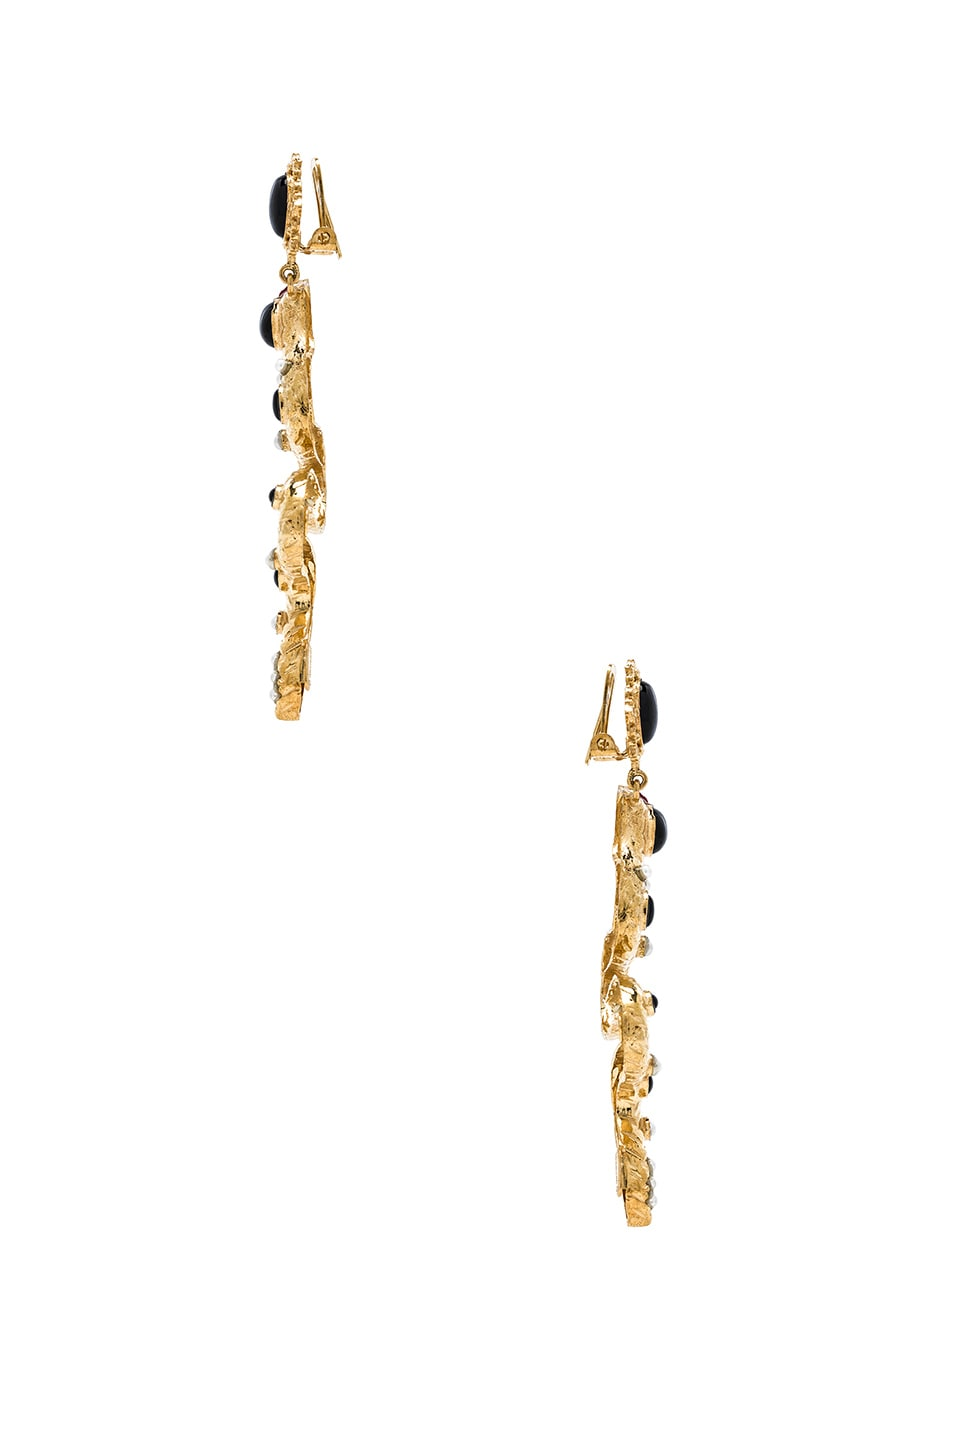 Image 2 of Christie Nicolaides Serpente Earrings in Gold